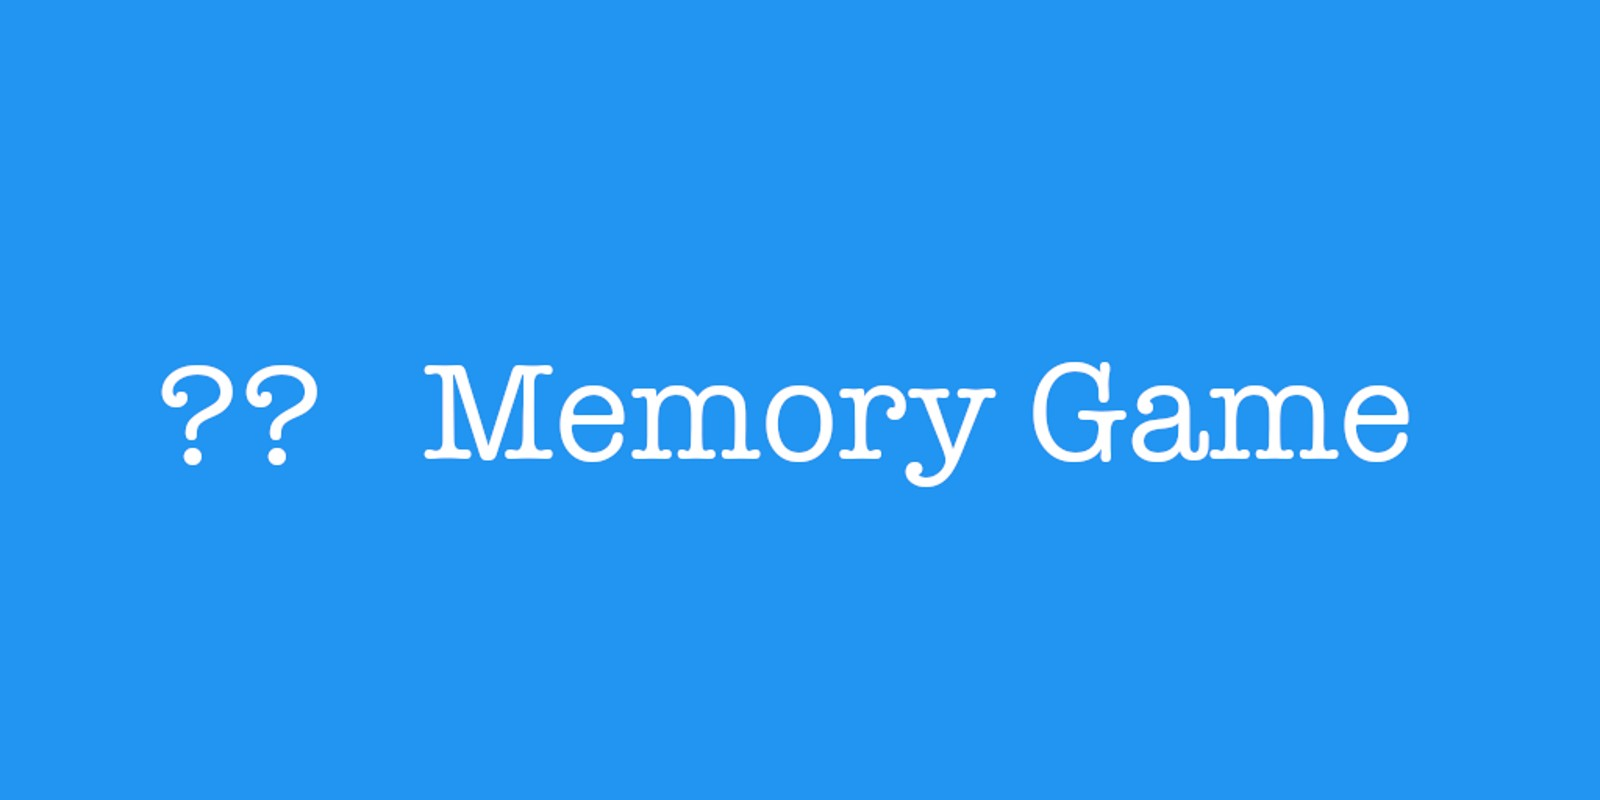 Memory Game Xcode Project